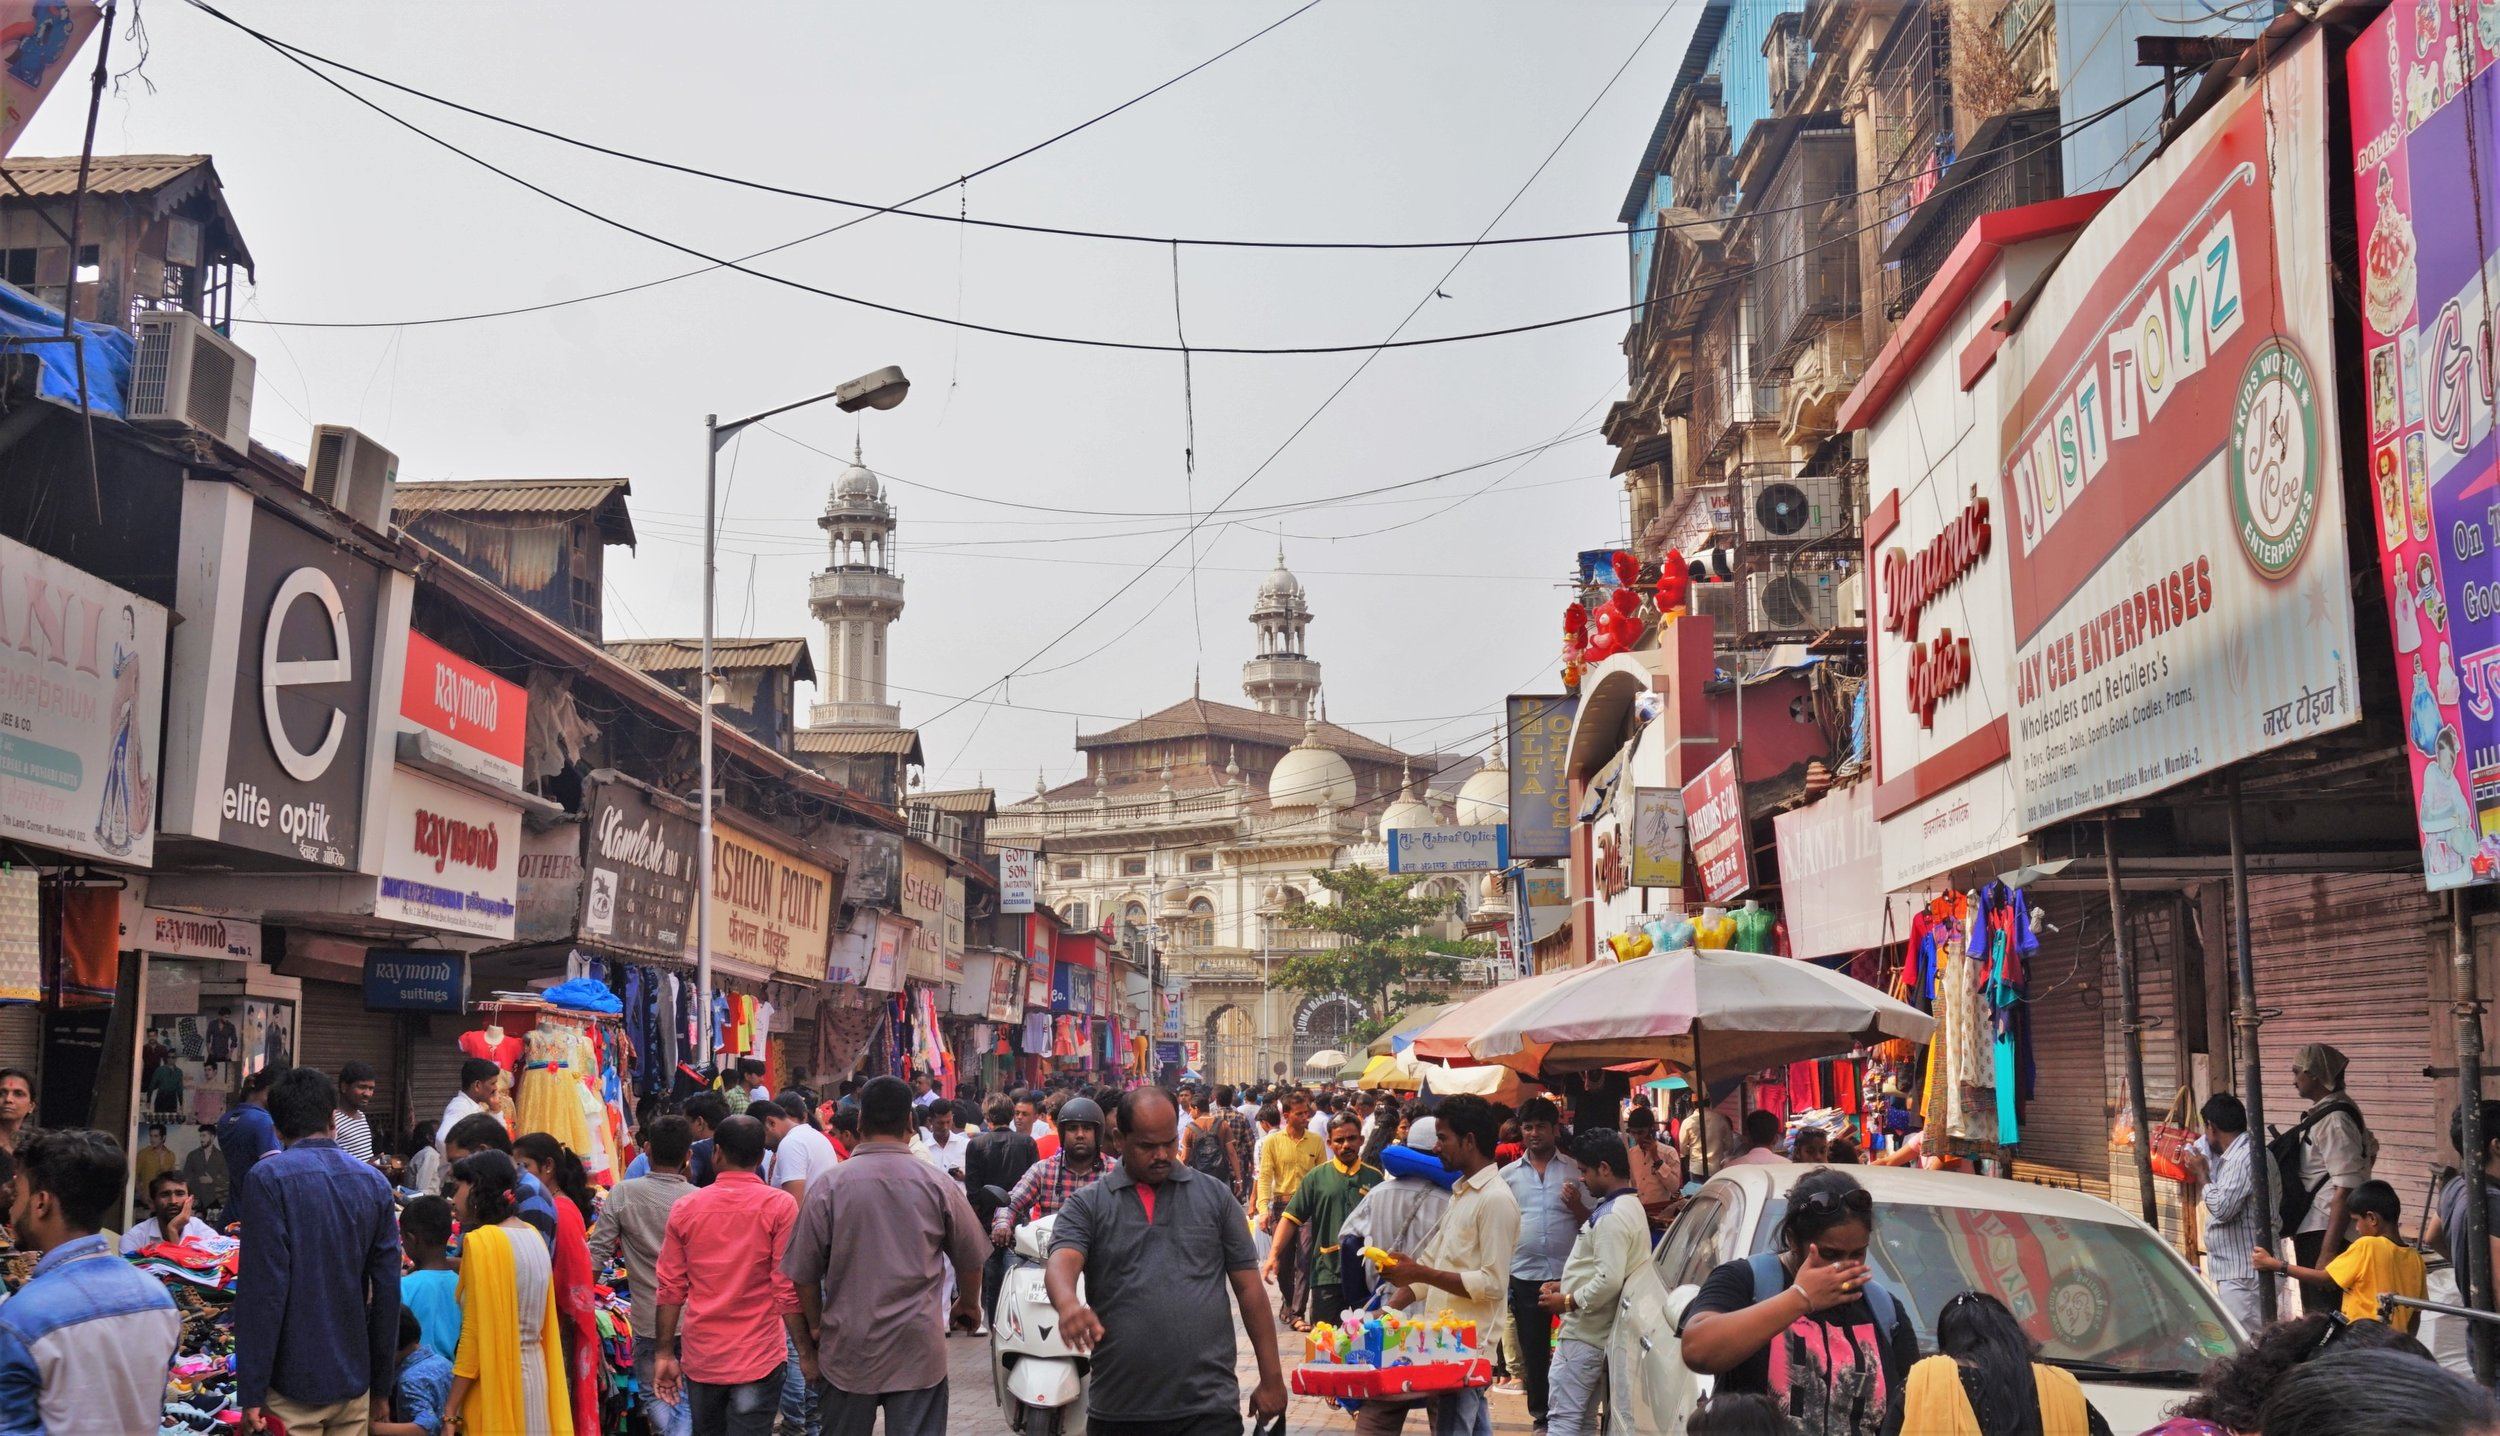 streets of india